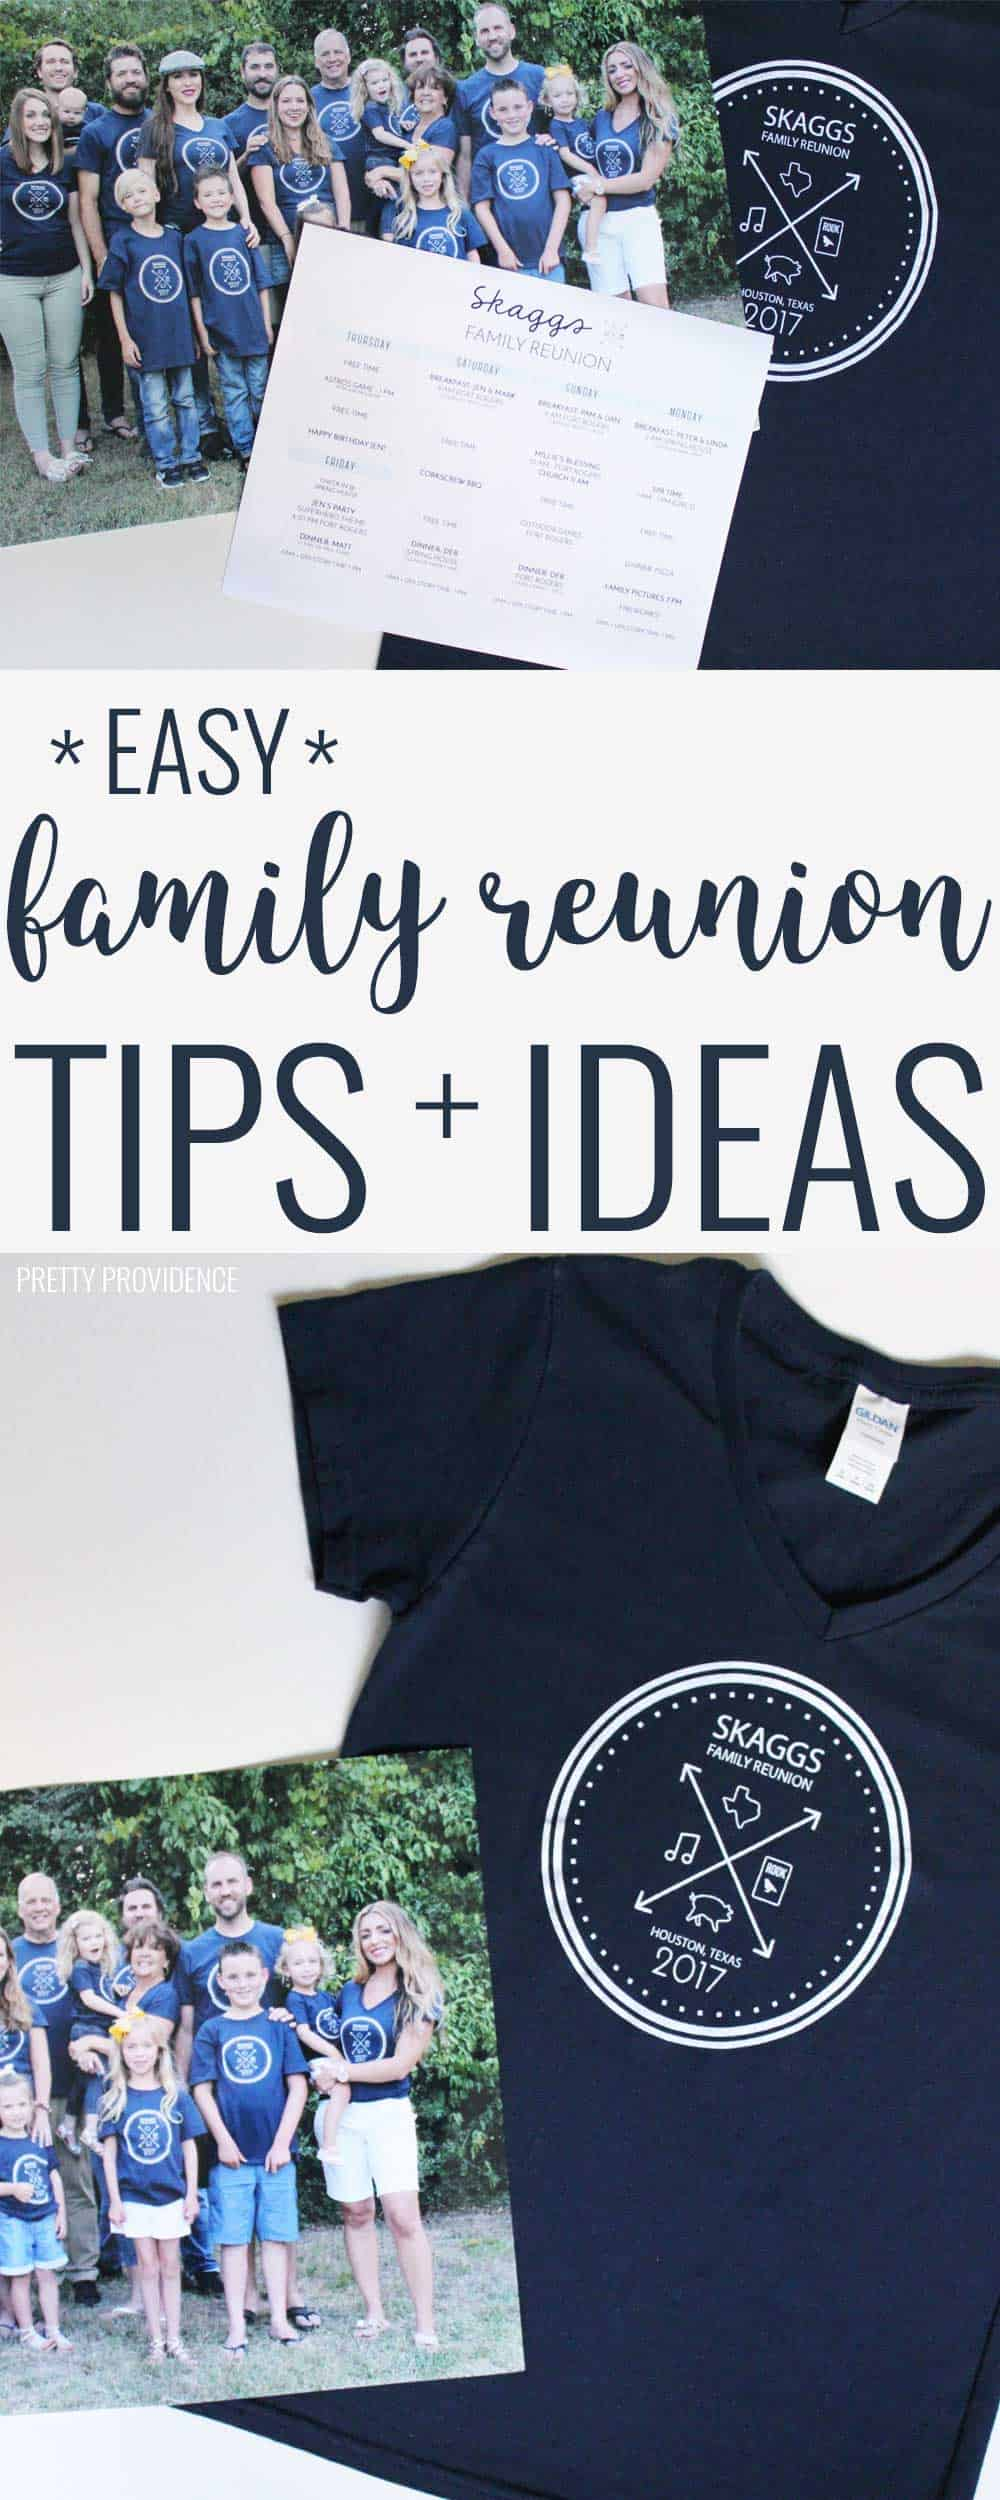 I love these reunion tips and ideas! Lots of practical stuff I wouldn't have thought of